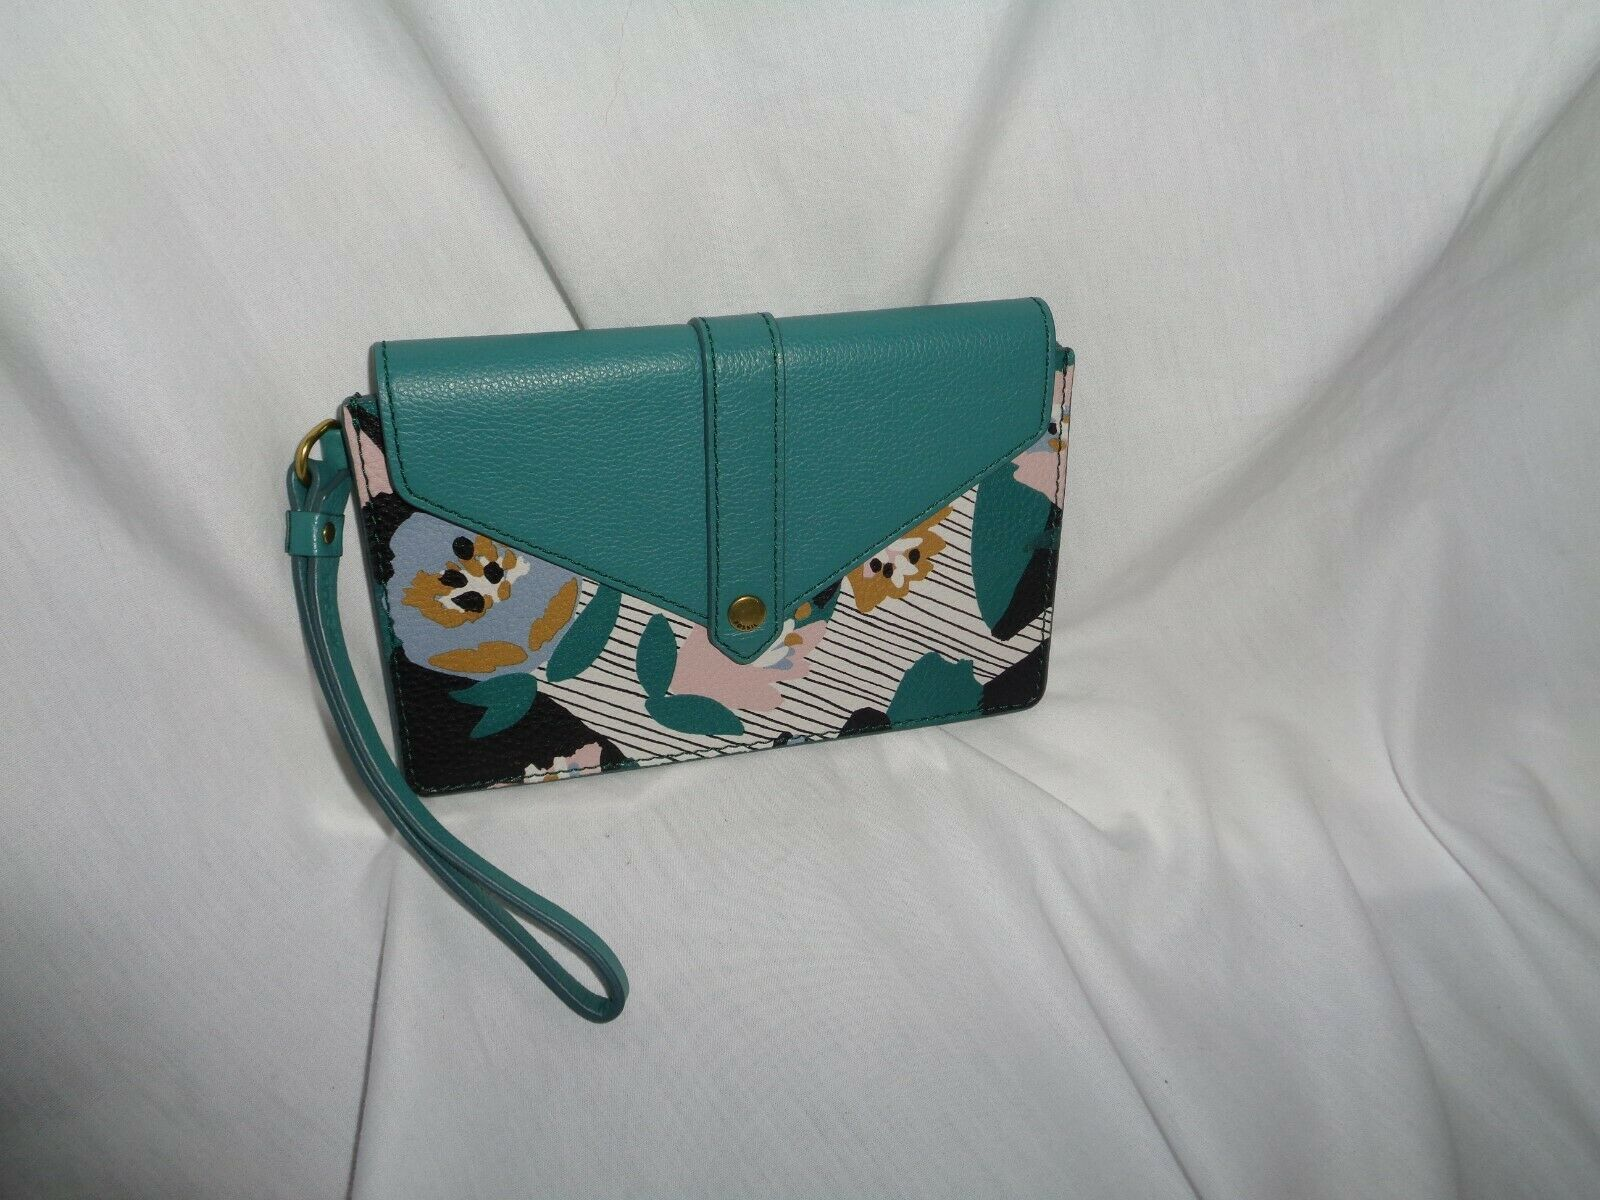 FOSSIL SOFIA PHONE CARD CASE WALLET WRISTLET CLUTCH BLUE FLORAL LEATHER